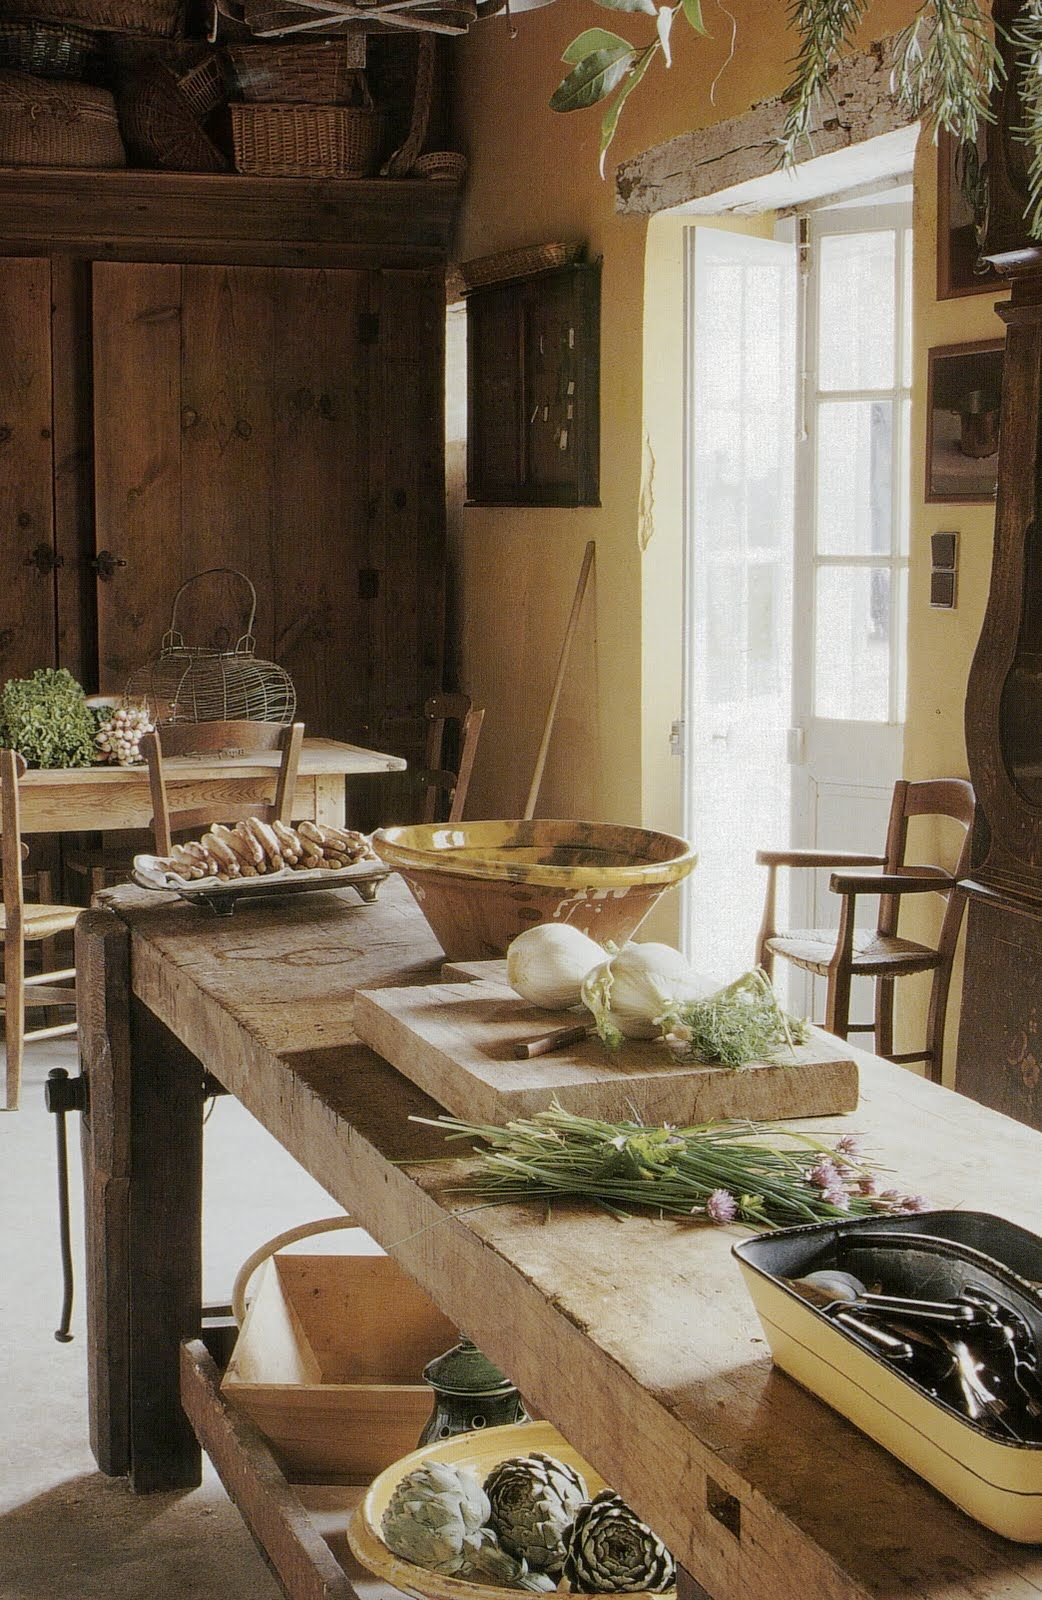 Italian Country Kitchen French Charm Spaces French Country House Country